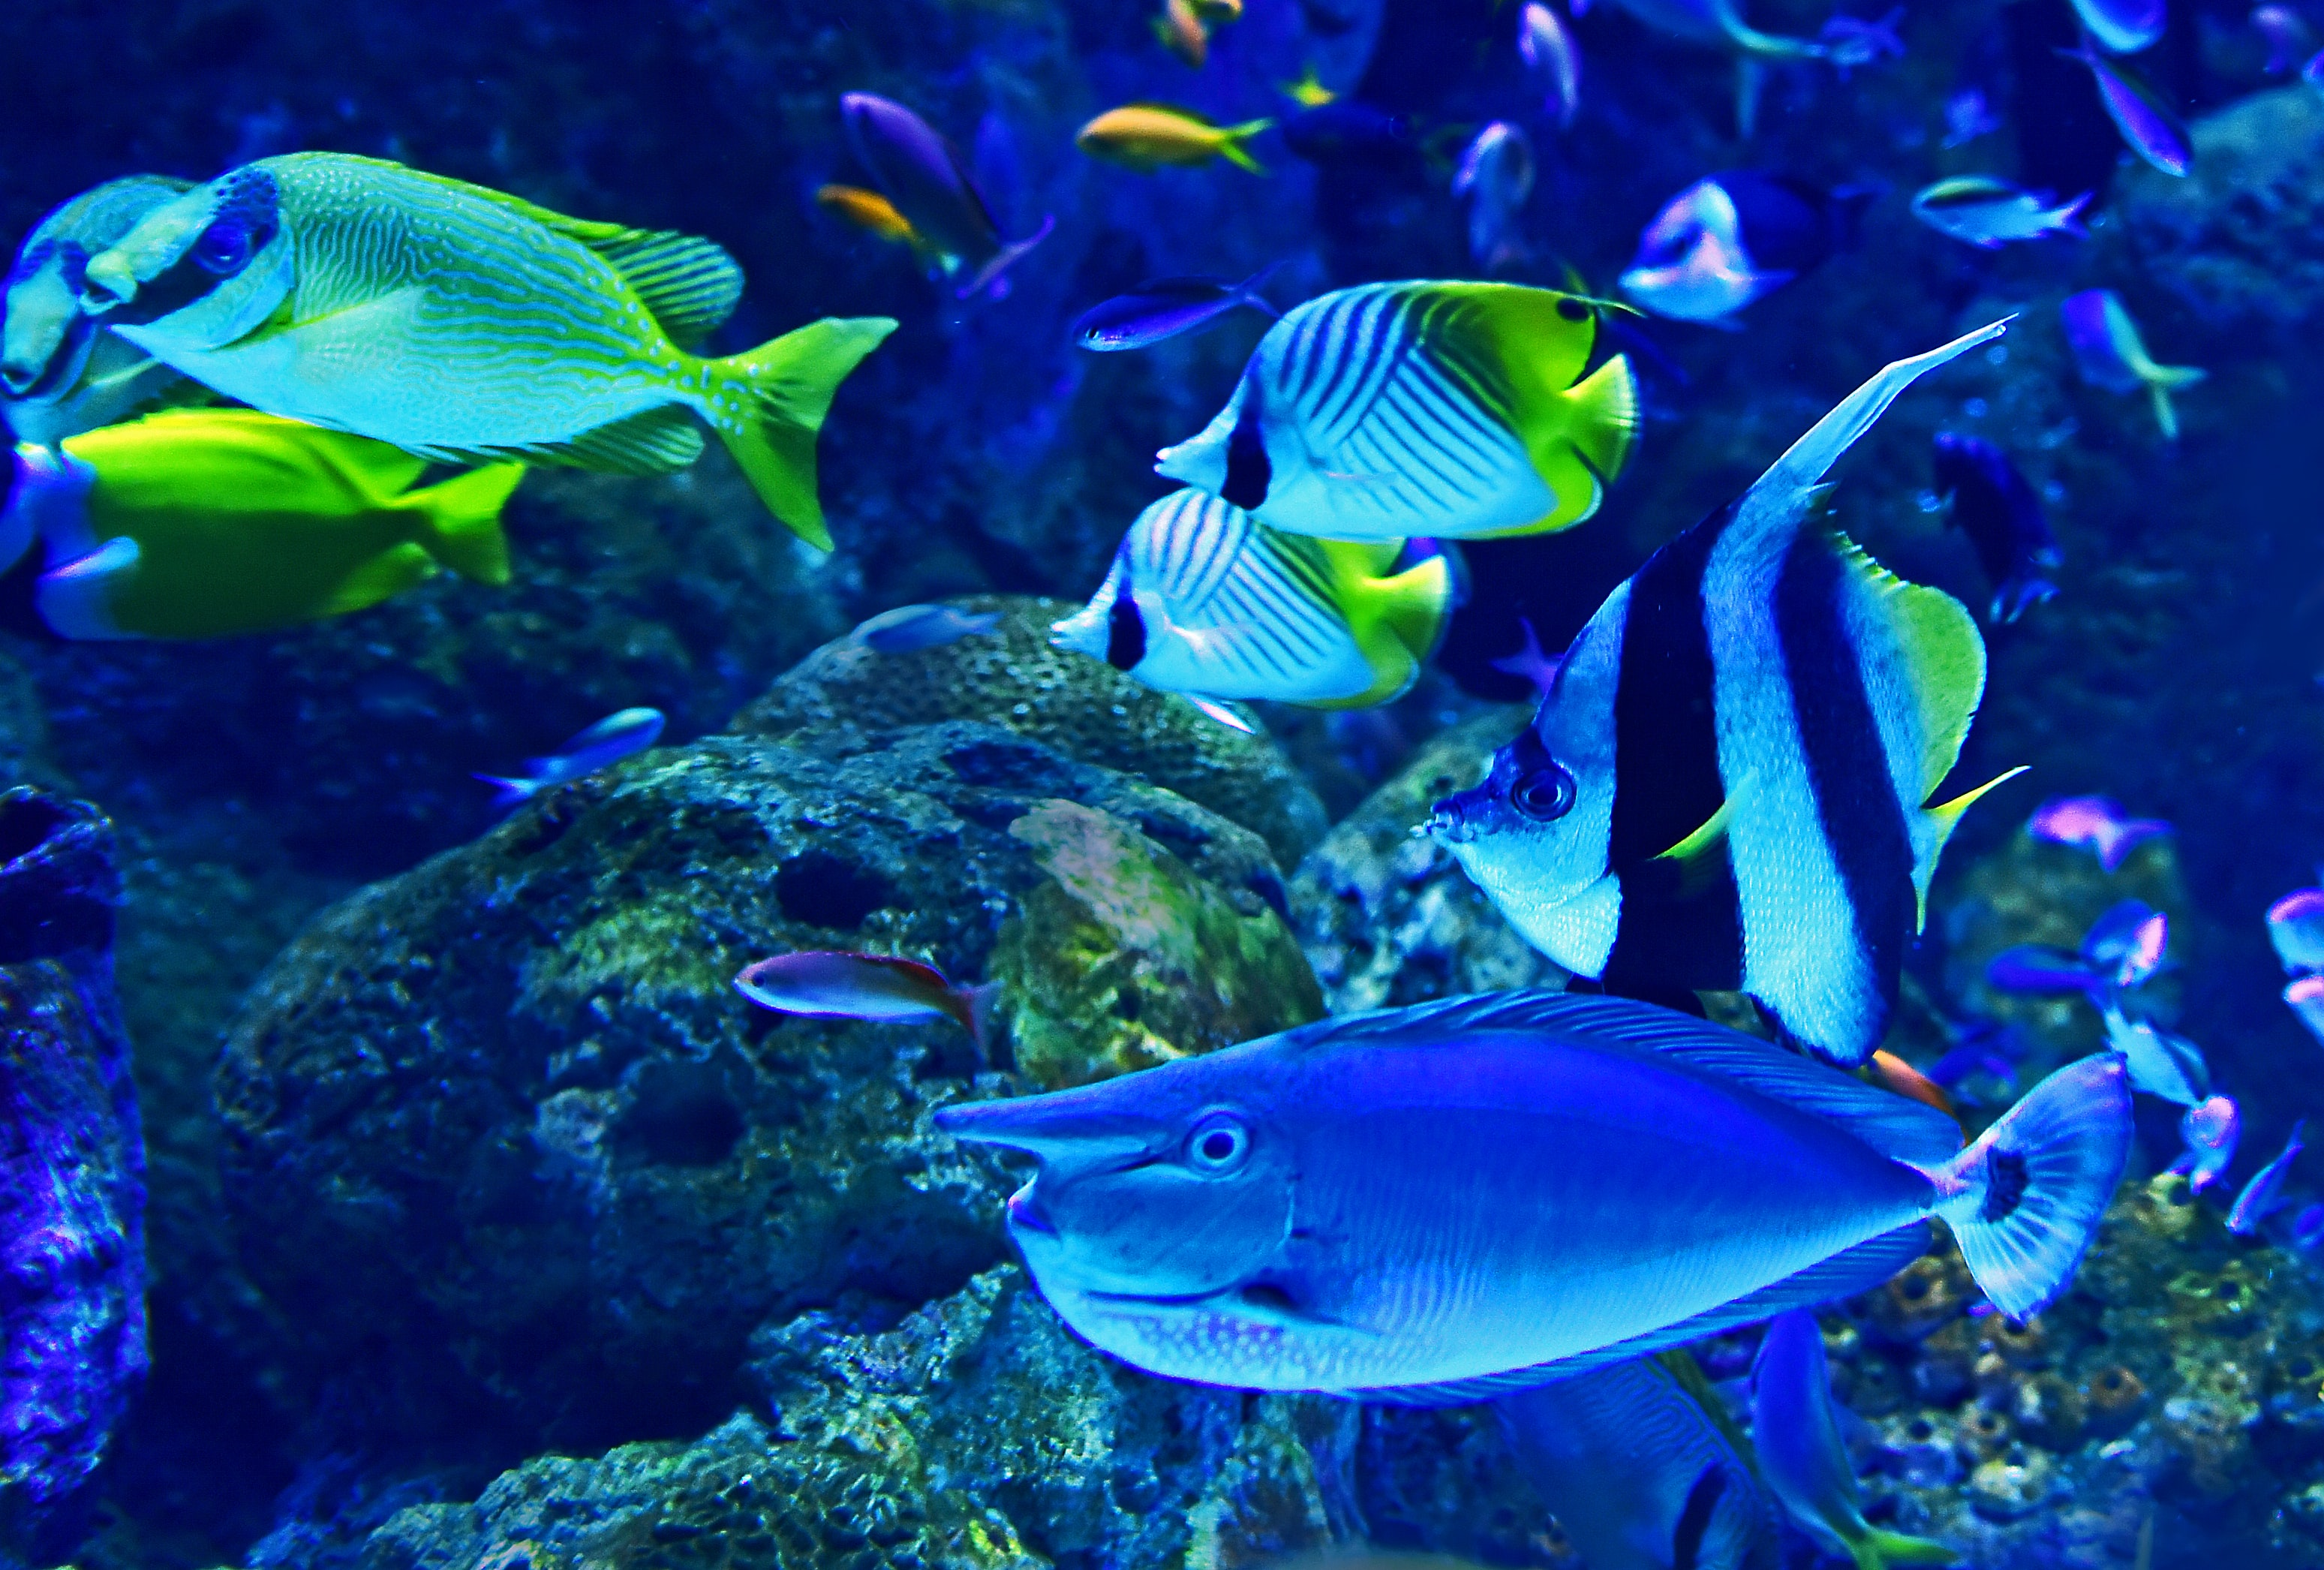 shoal of fish near coral